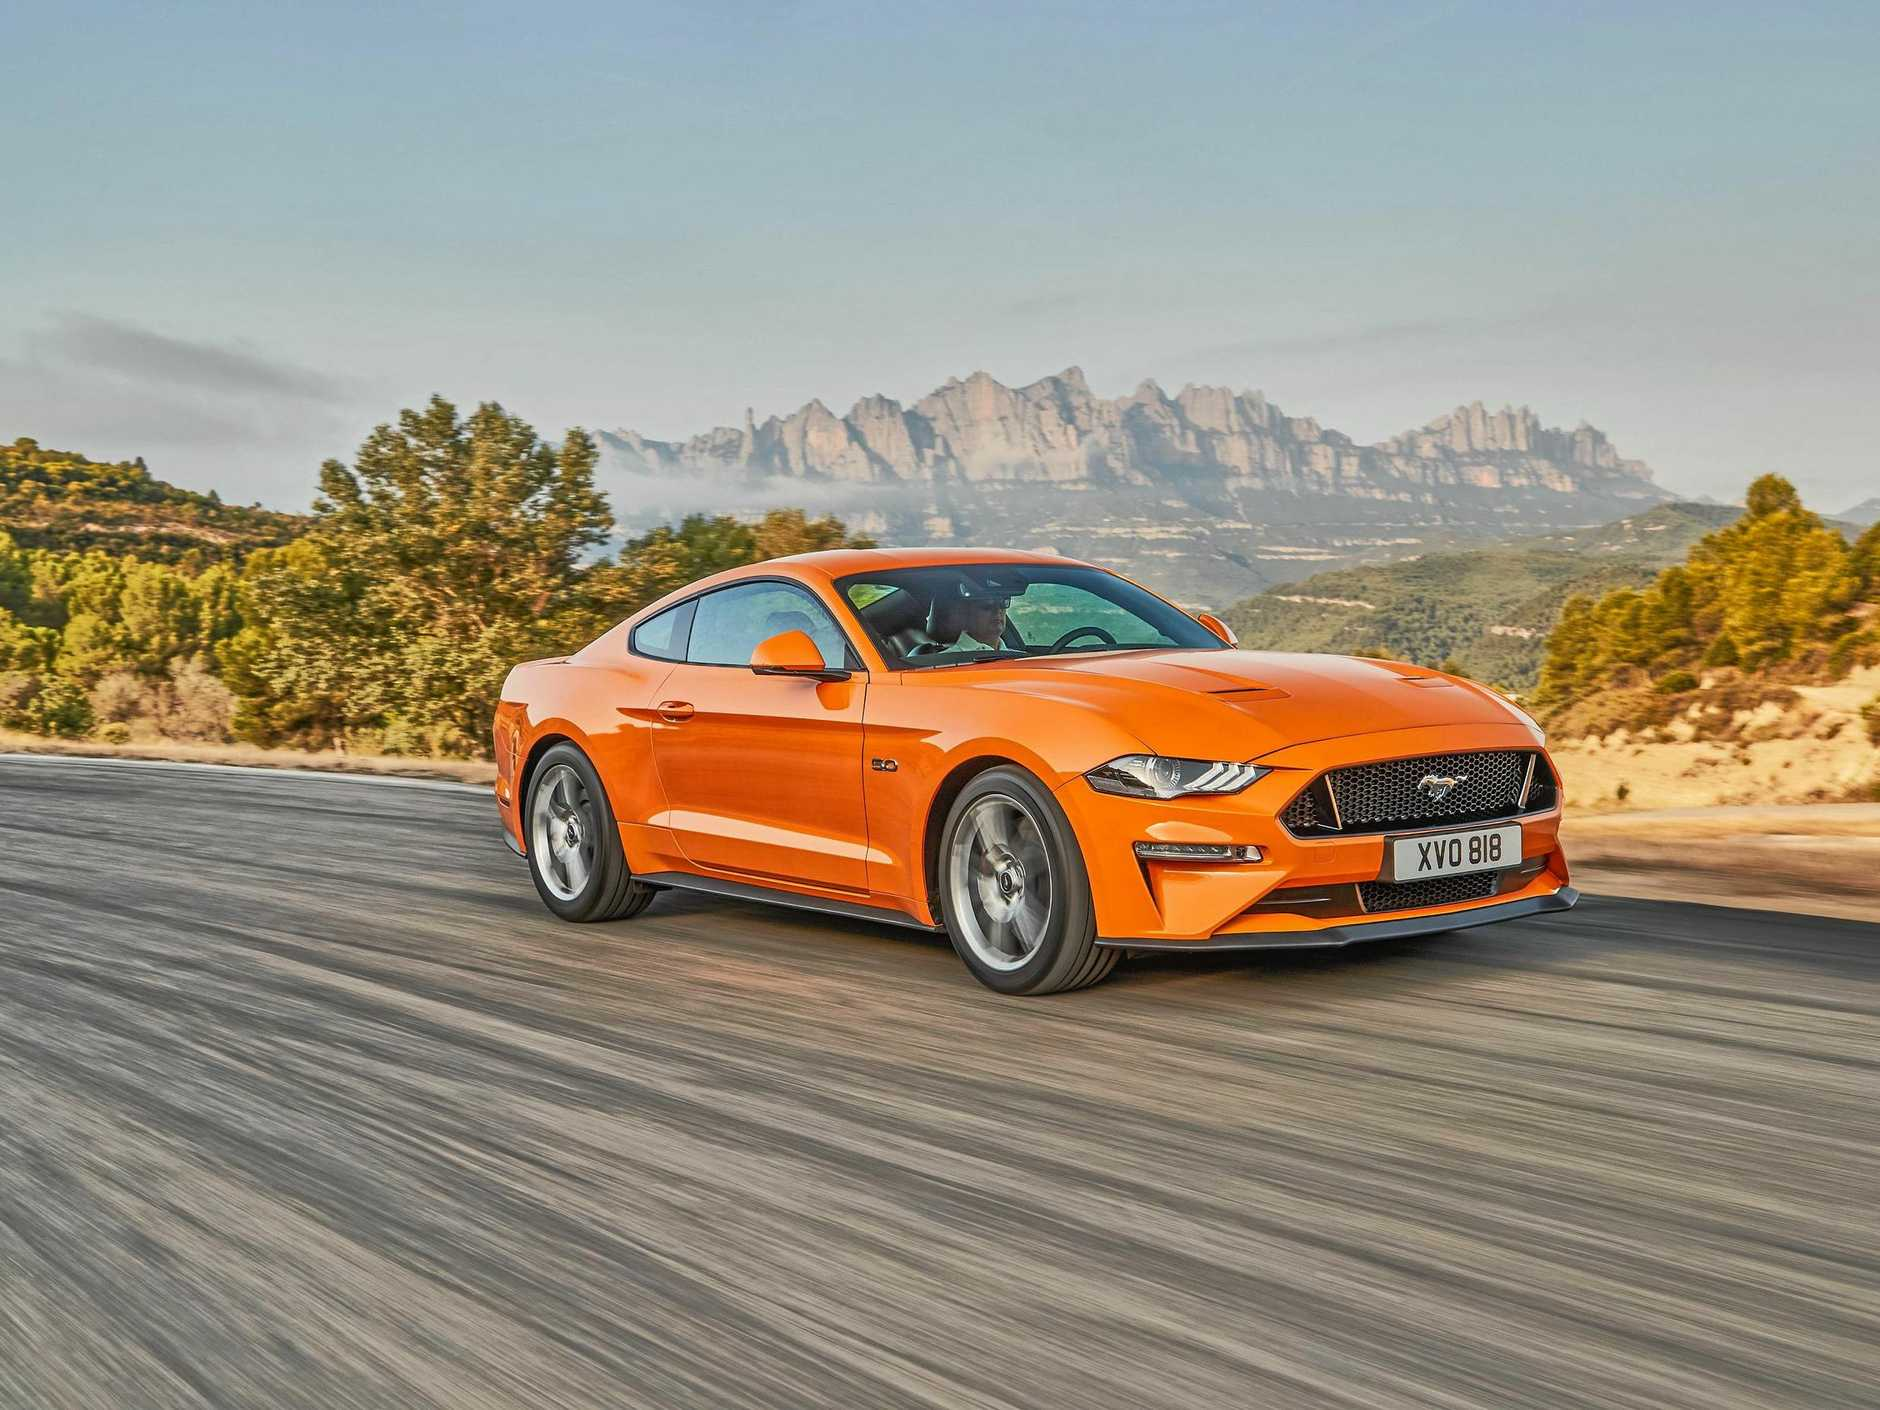 The new 2018 Ford Mustang comes with improved technology and more firepower from the V8.